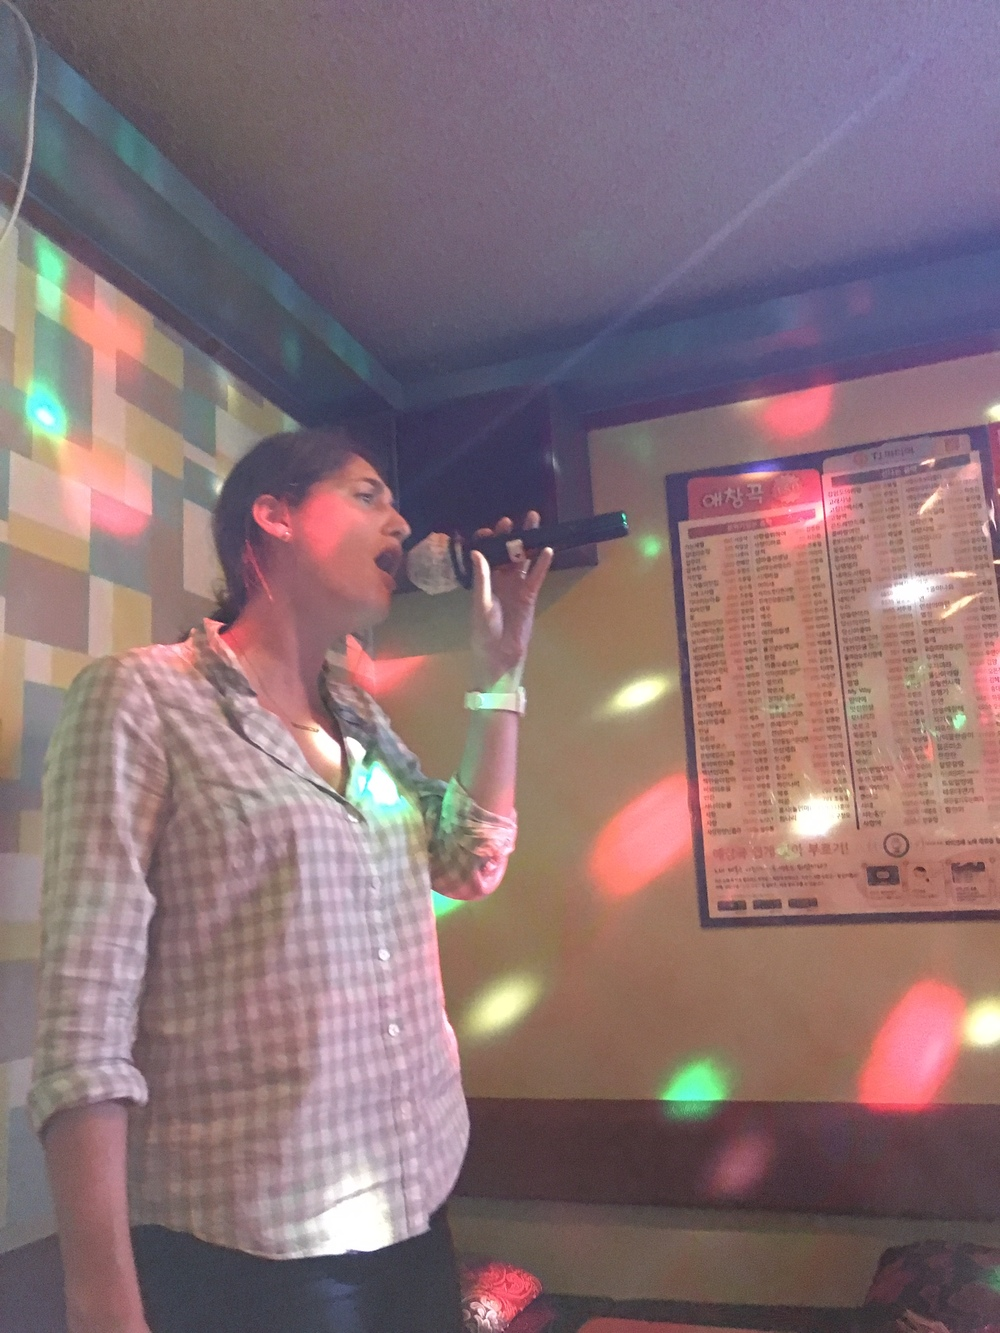 Karaoke audience of one